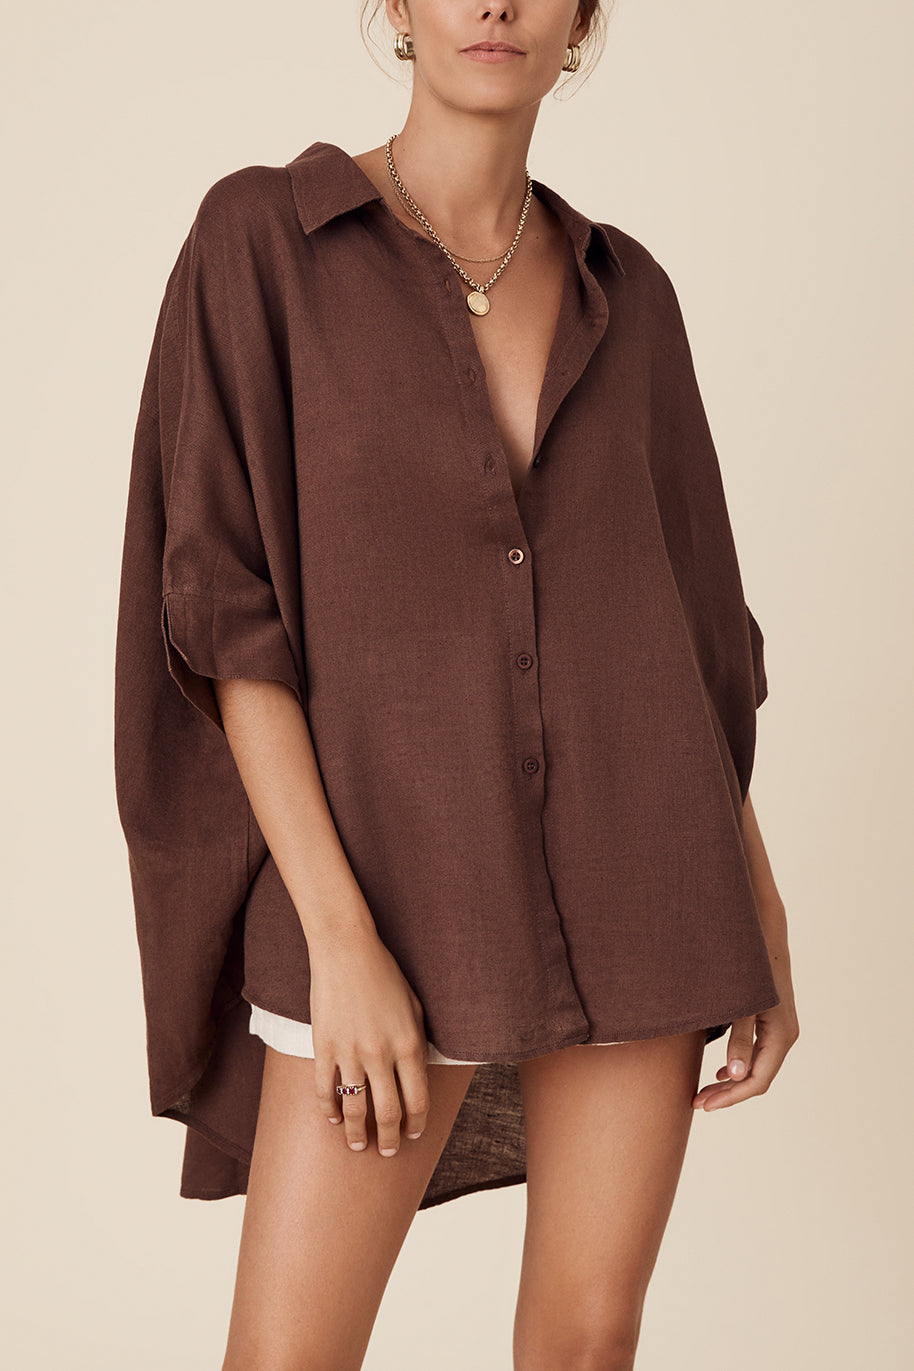 LULA SHIRT - CHOCOLATE